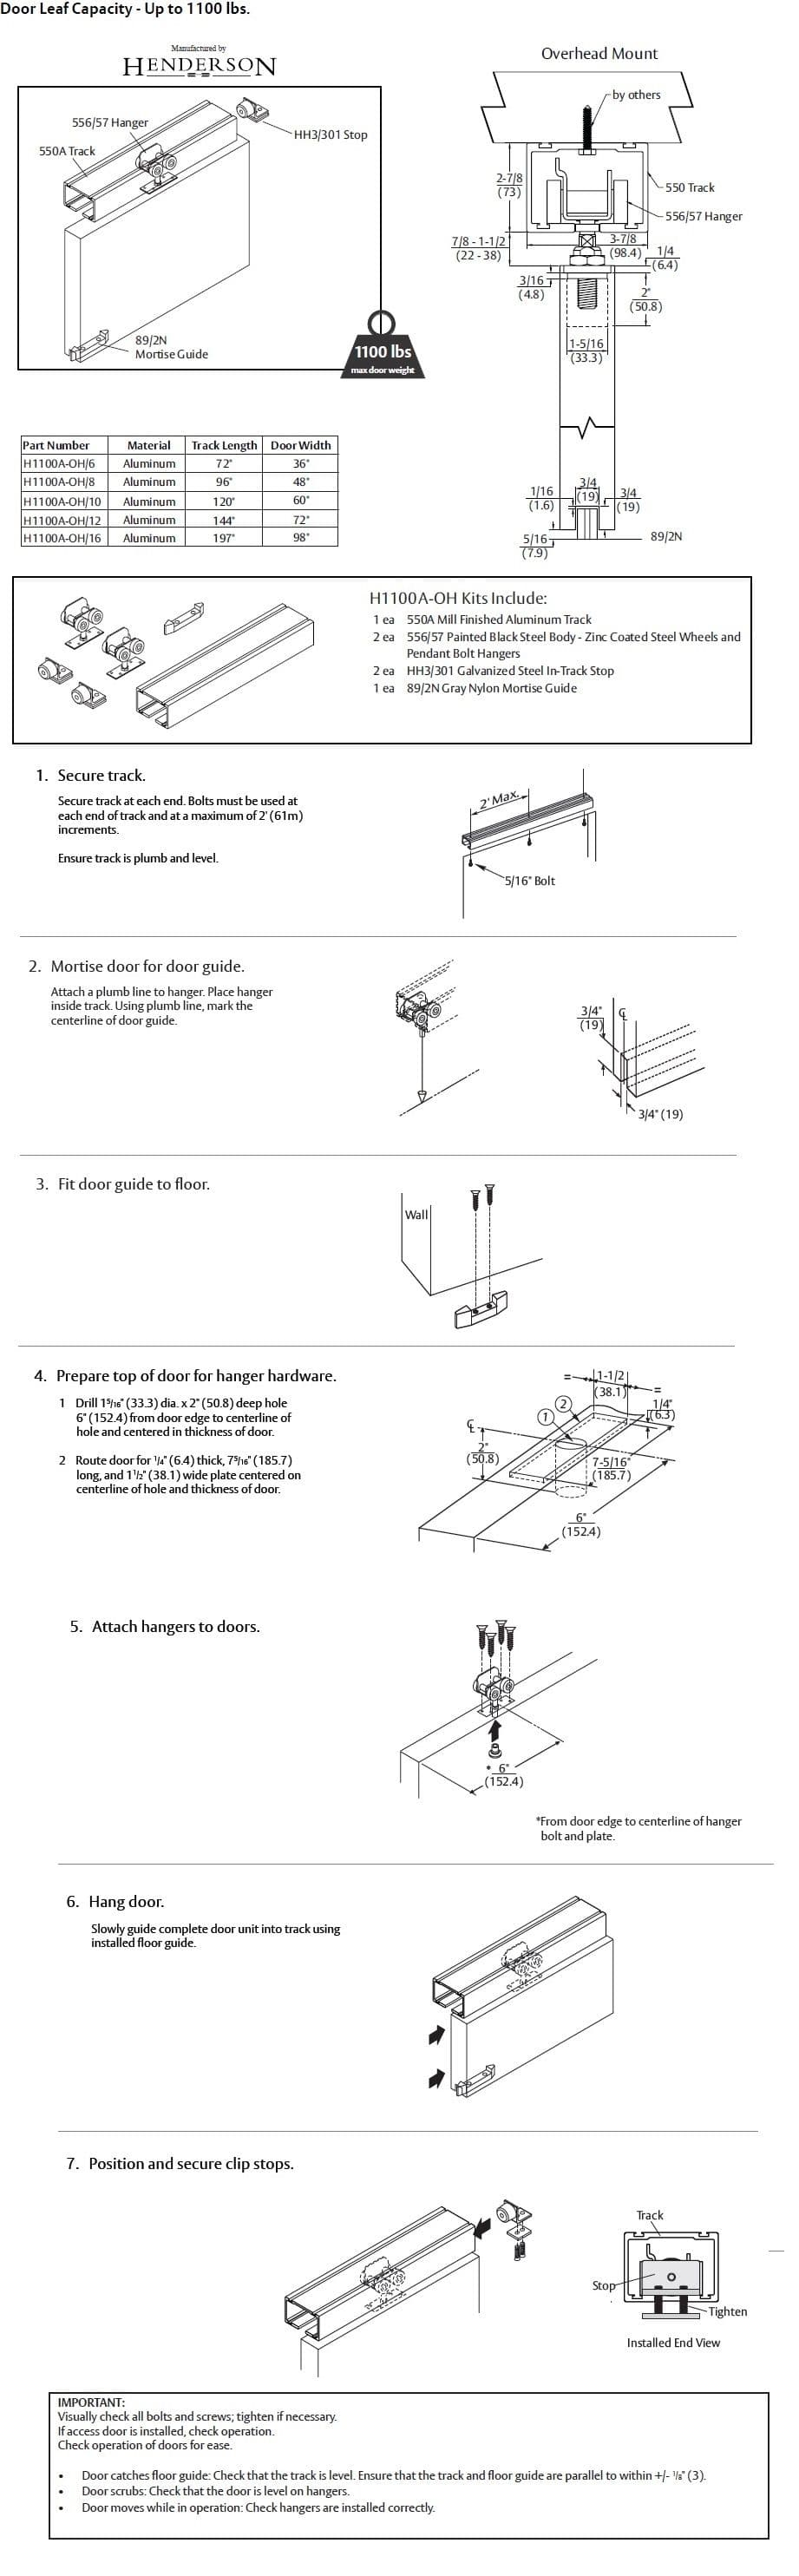 Pc Henderson H1100a Sliding Door Mounting Kit 1100 Lbs Trademark